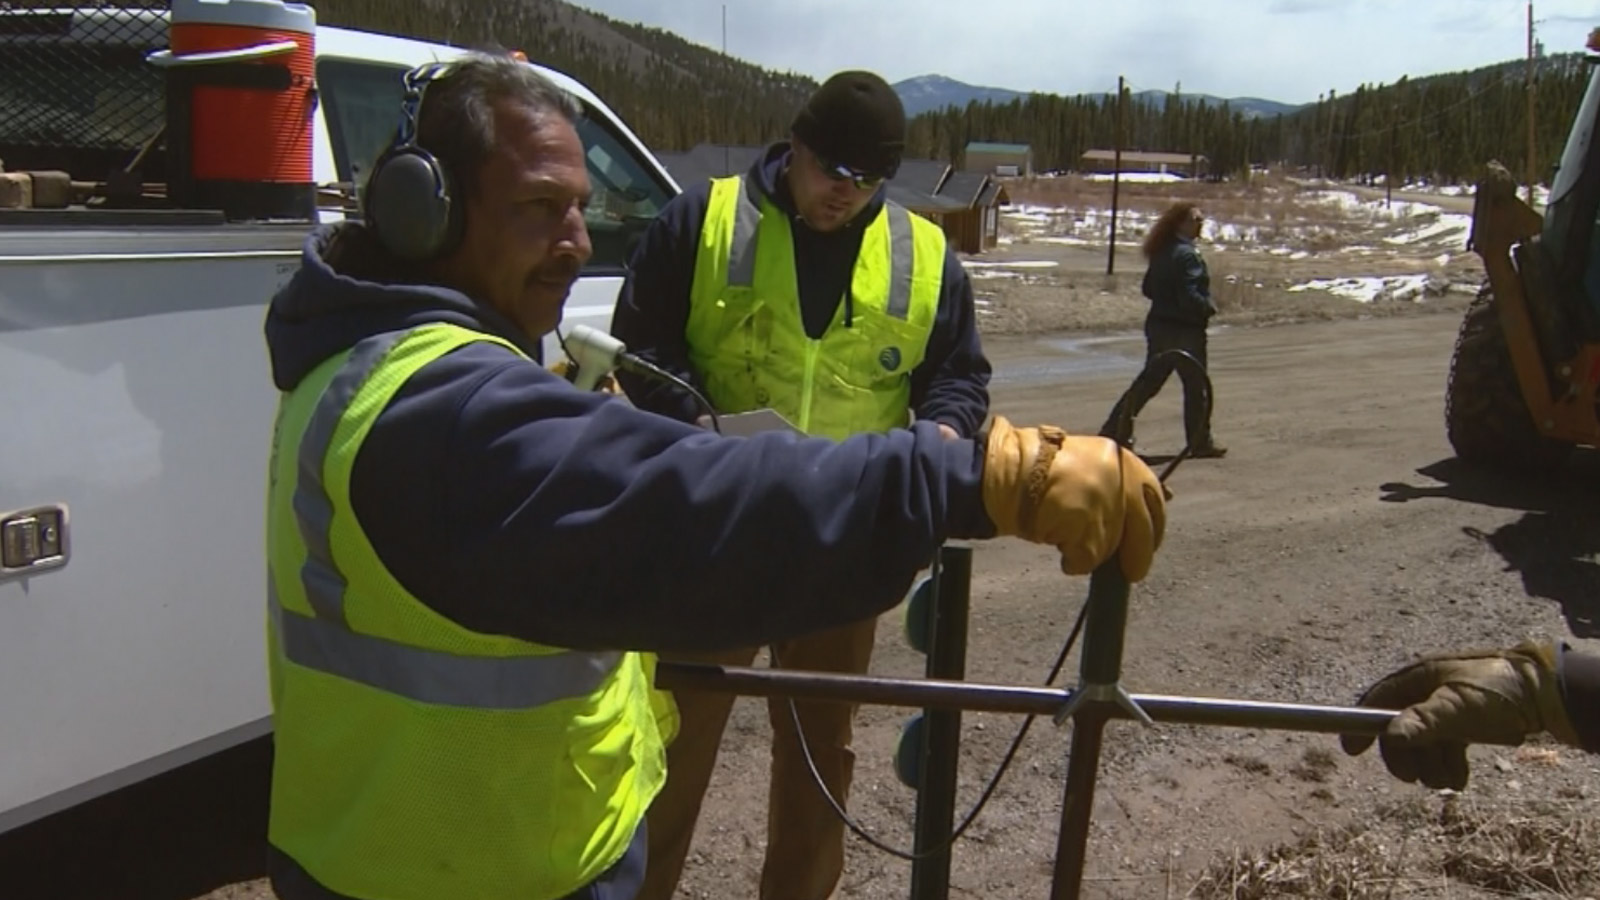 Crews with Aurora Water help St. Mary's Glacier with their water issue (credit: CBS)